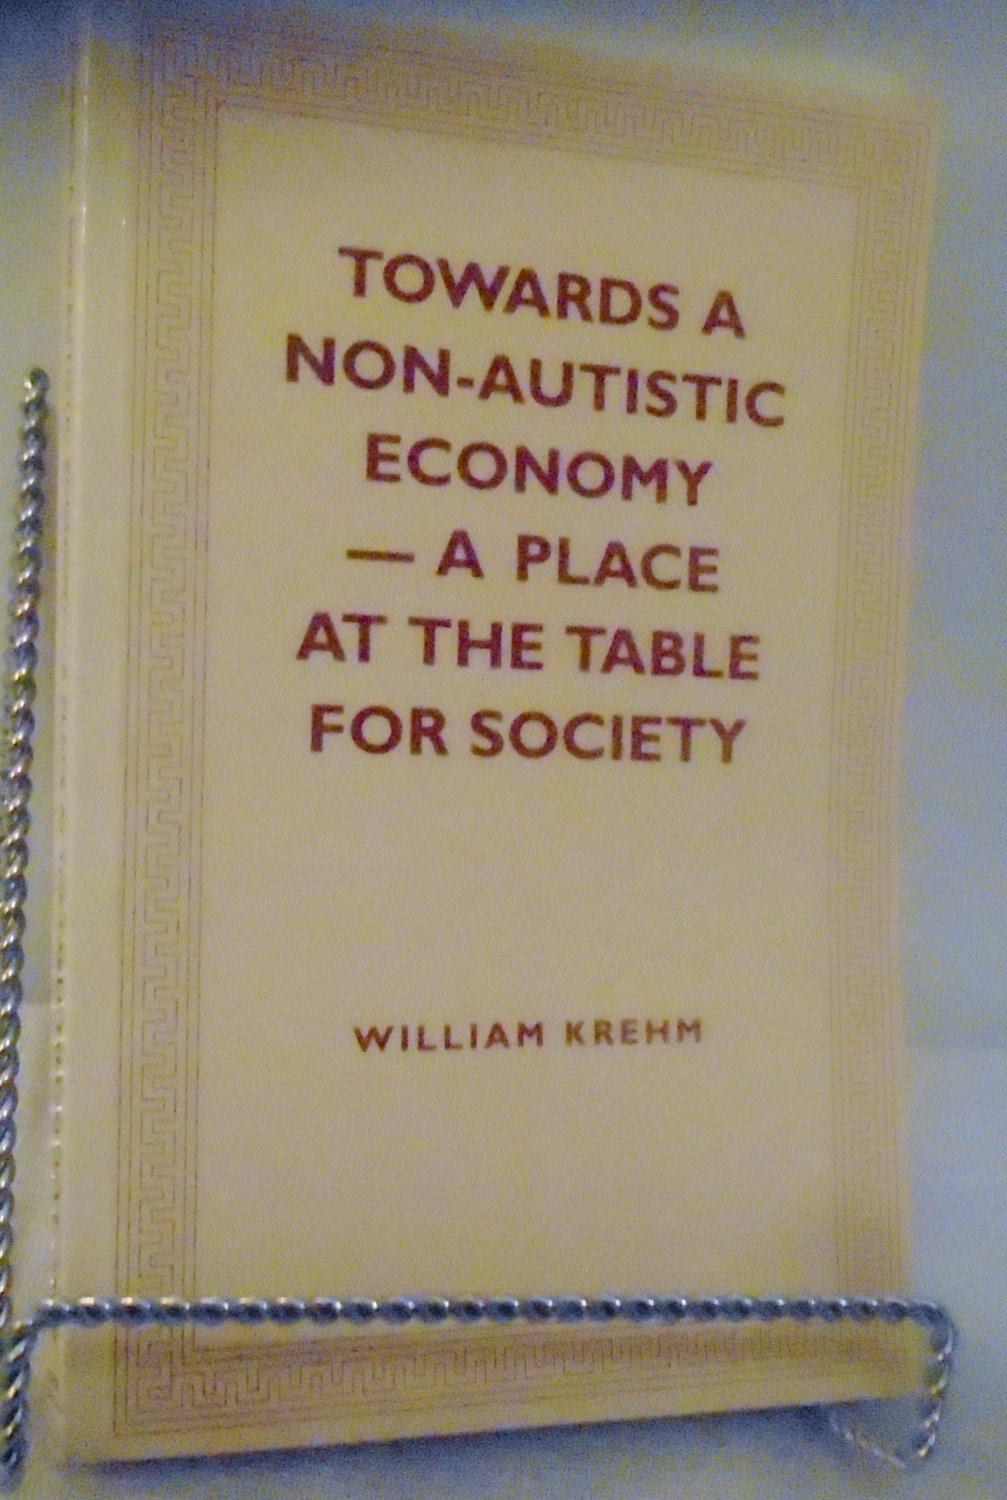 Towards a Non-Autistic Economy - A Place at the Table for Society